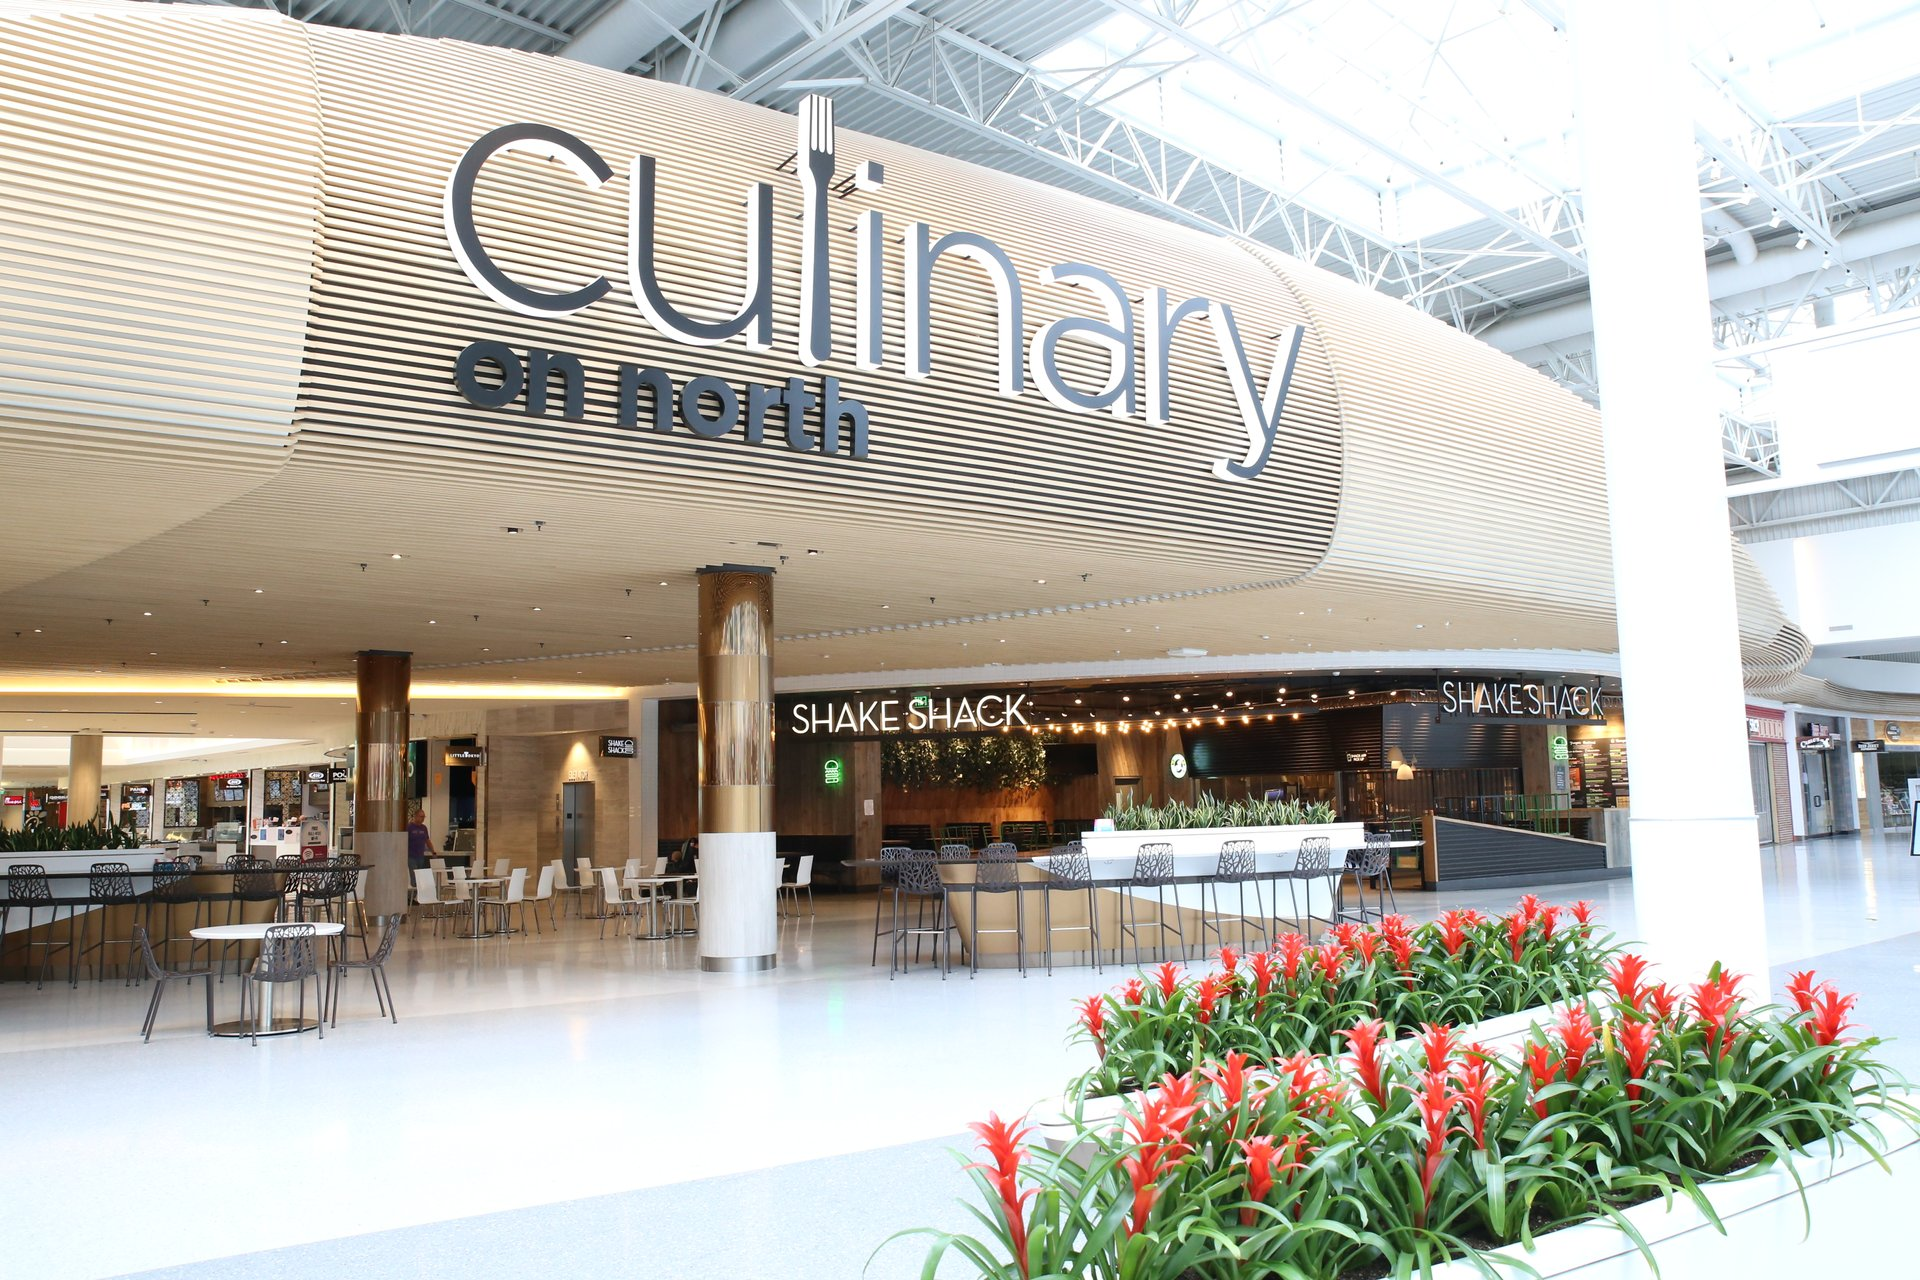 The Culinary on North Food Court has many Mall of America restaurants